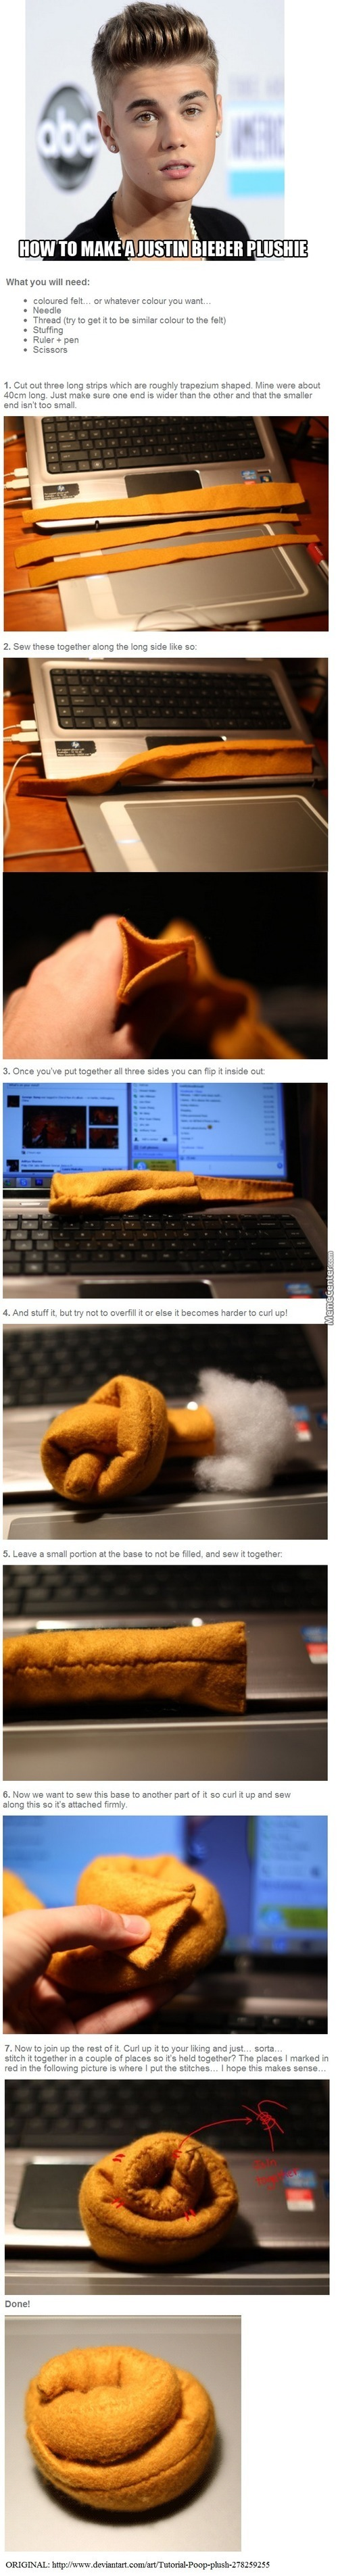 How To Make A Justin Bieber Plushie ^^